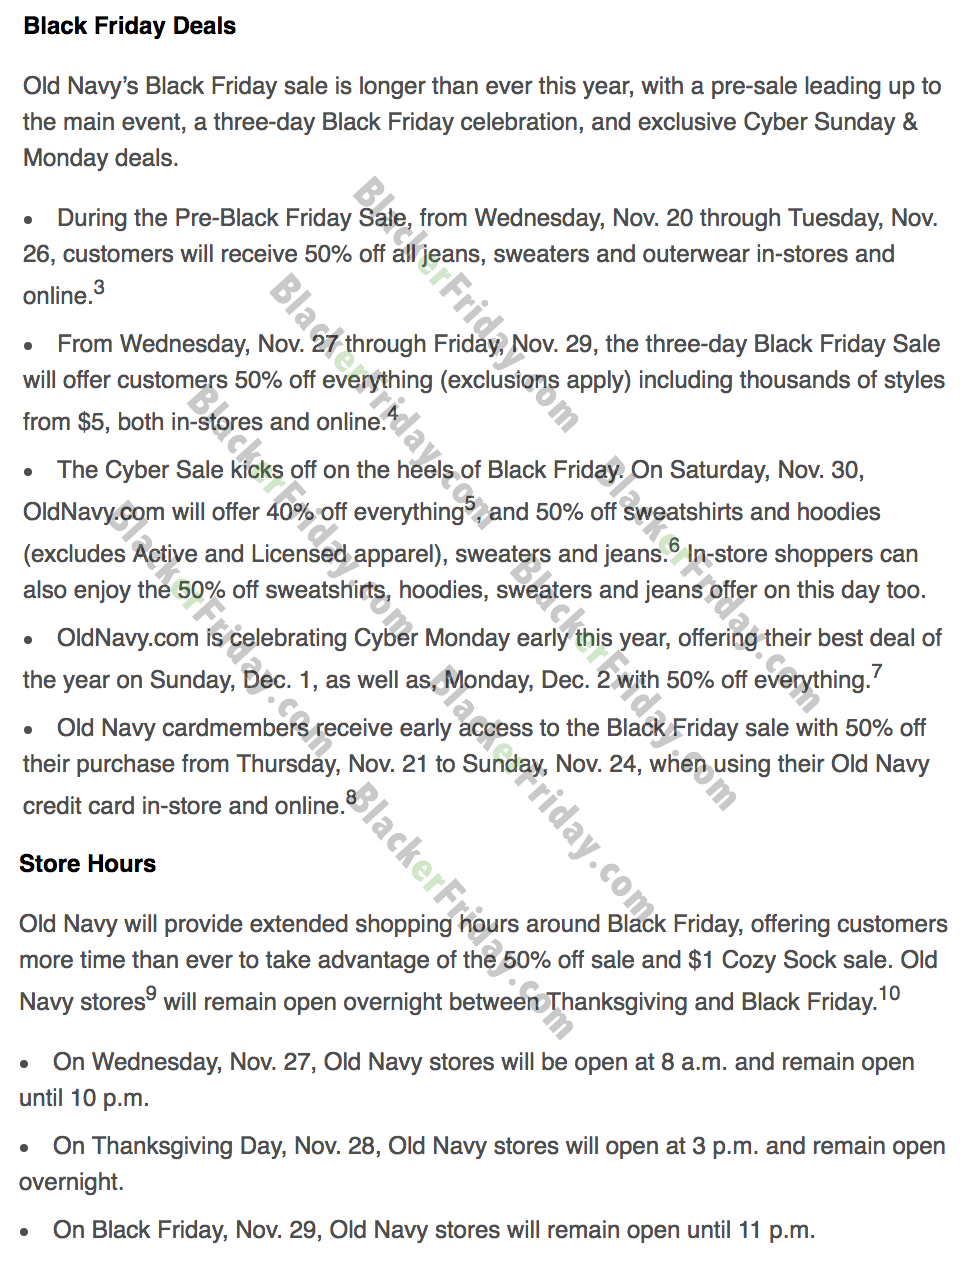 Old Navy Black Friday 2021 Sale What To Expect Blacker Friday